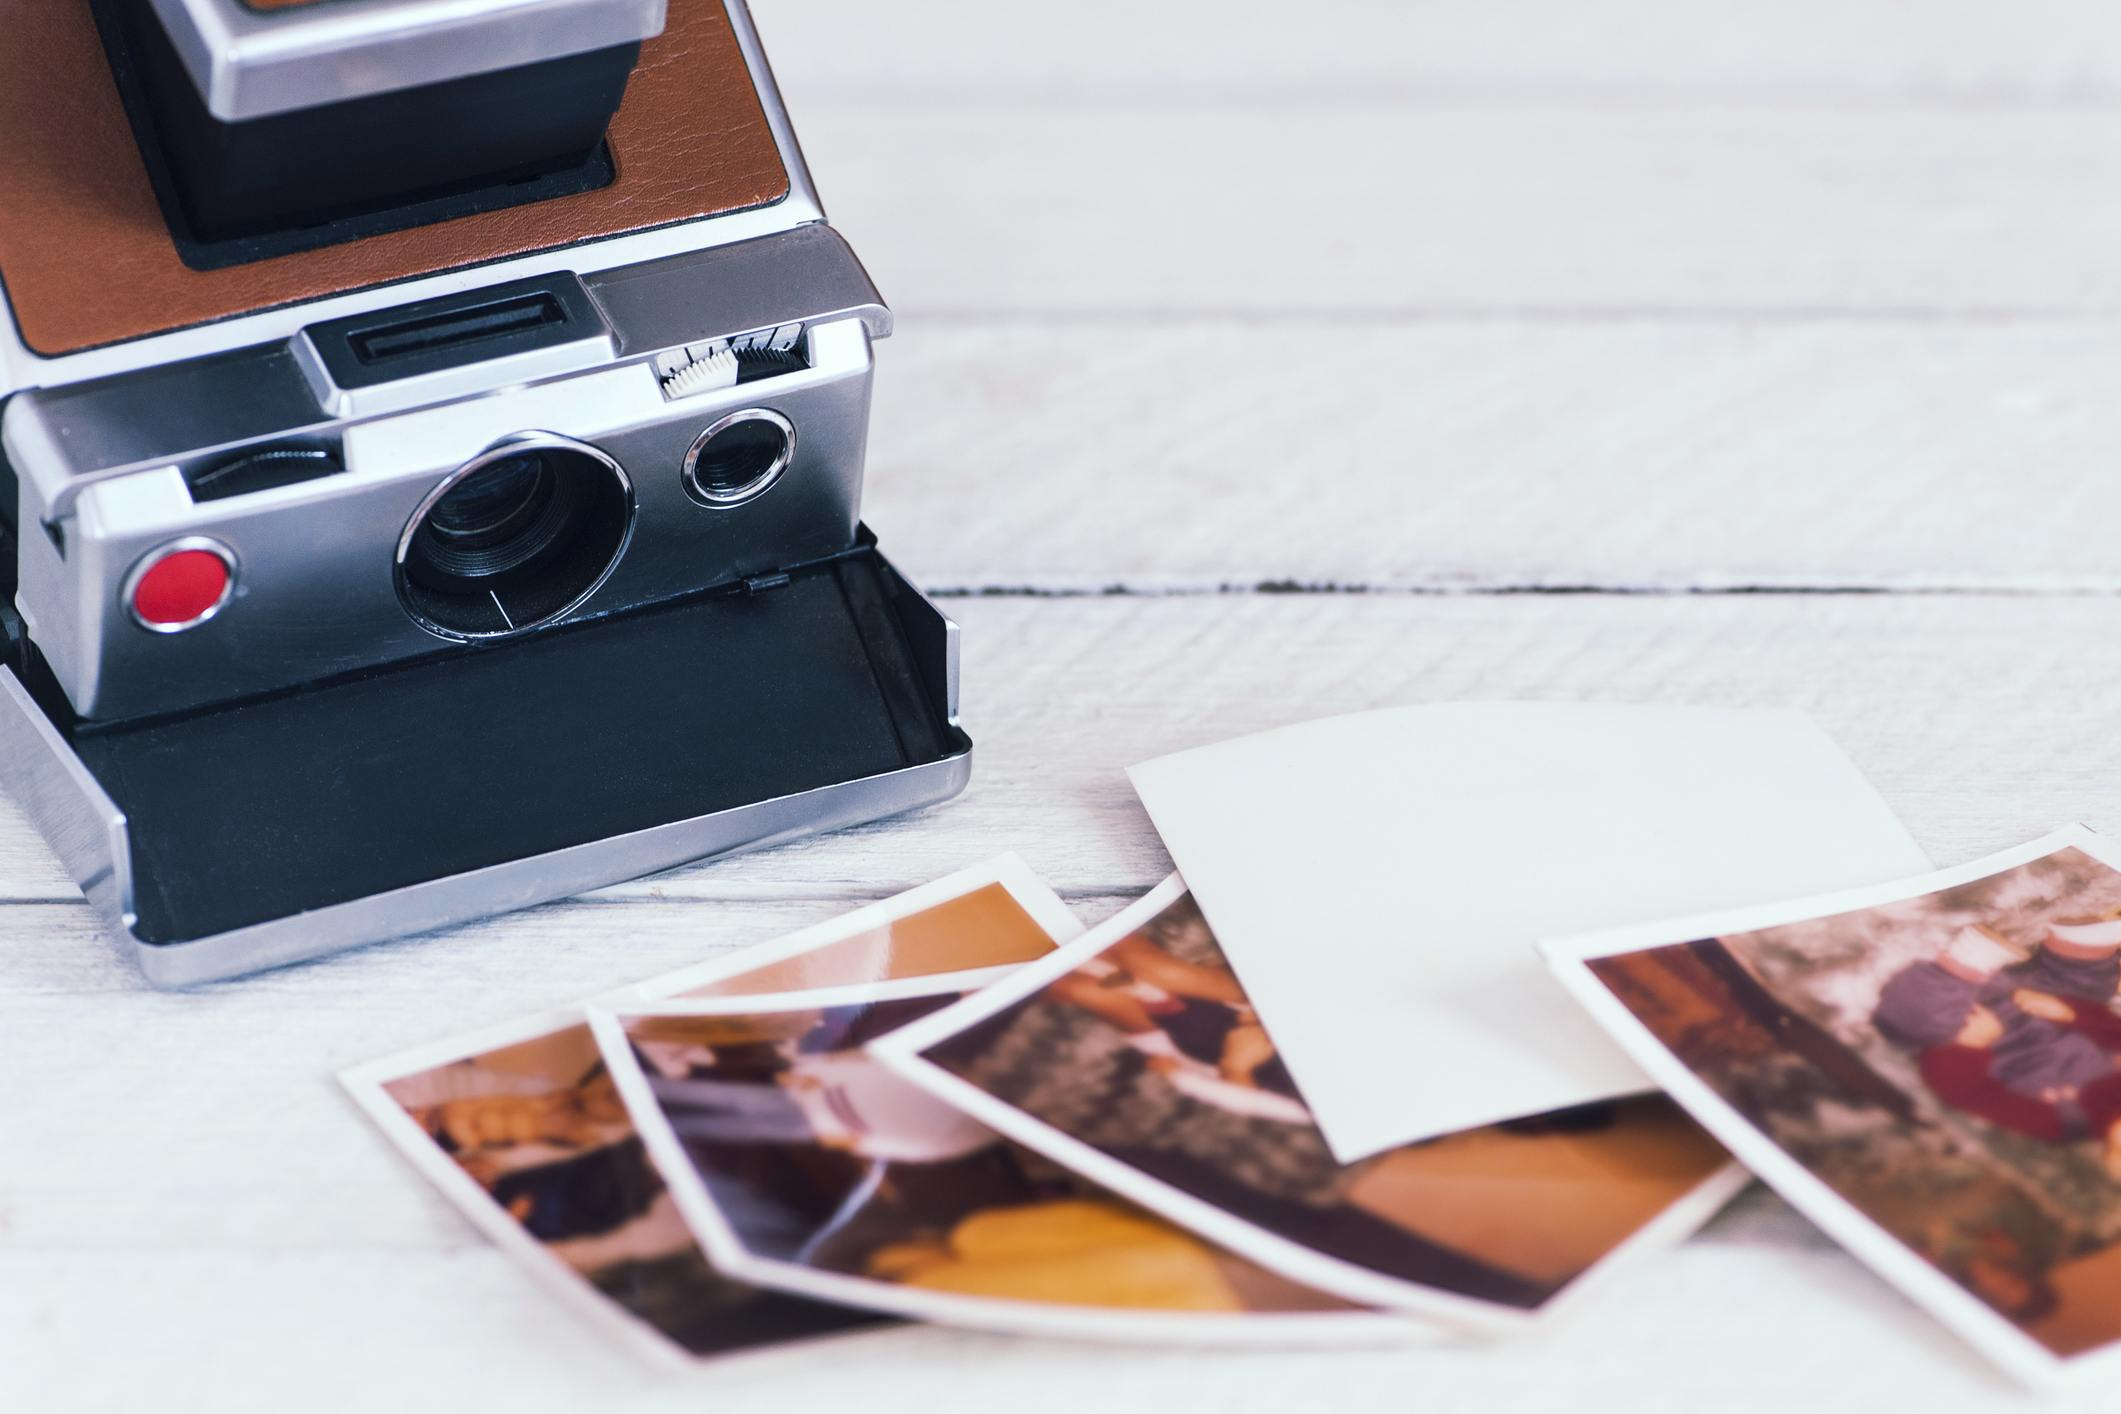 Polaroid camera with photos